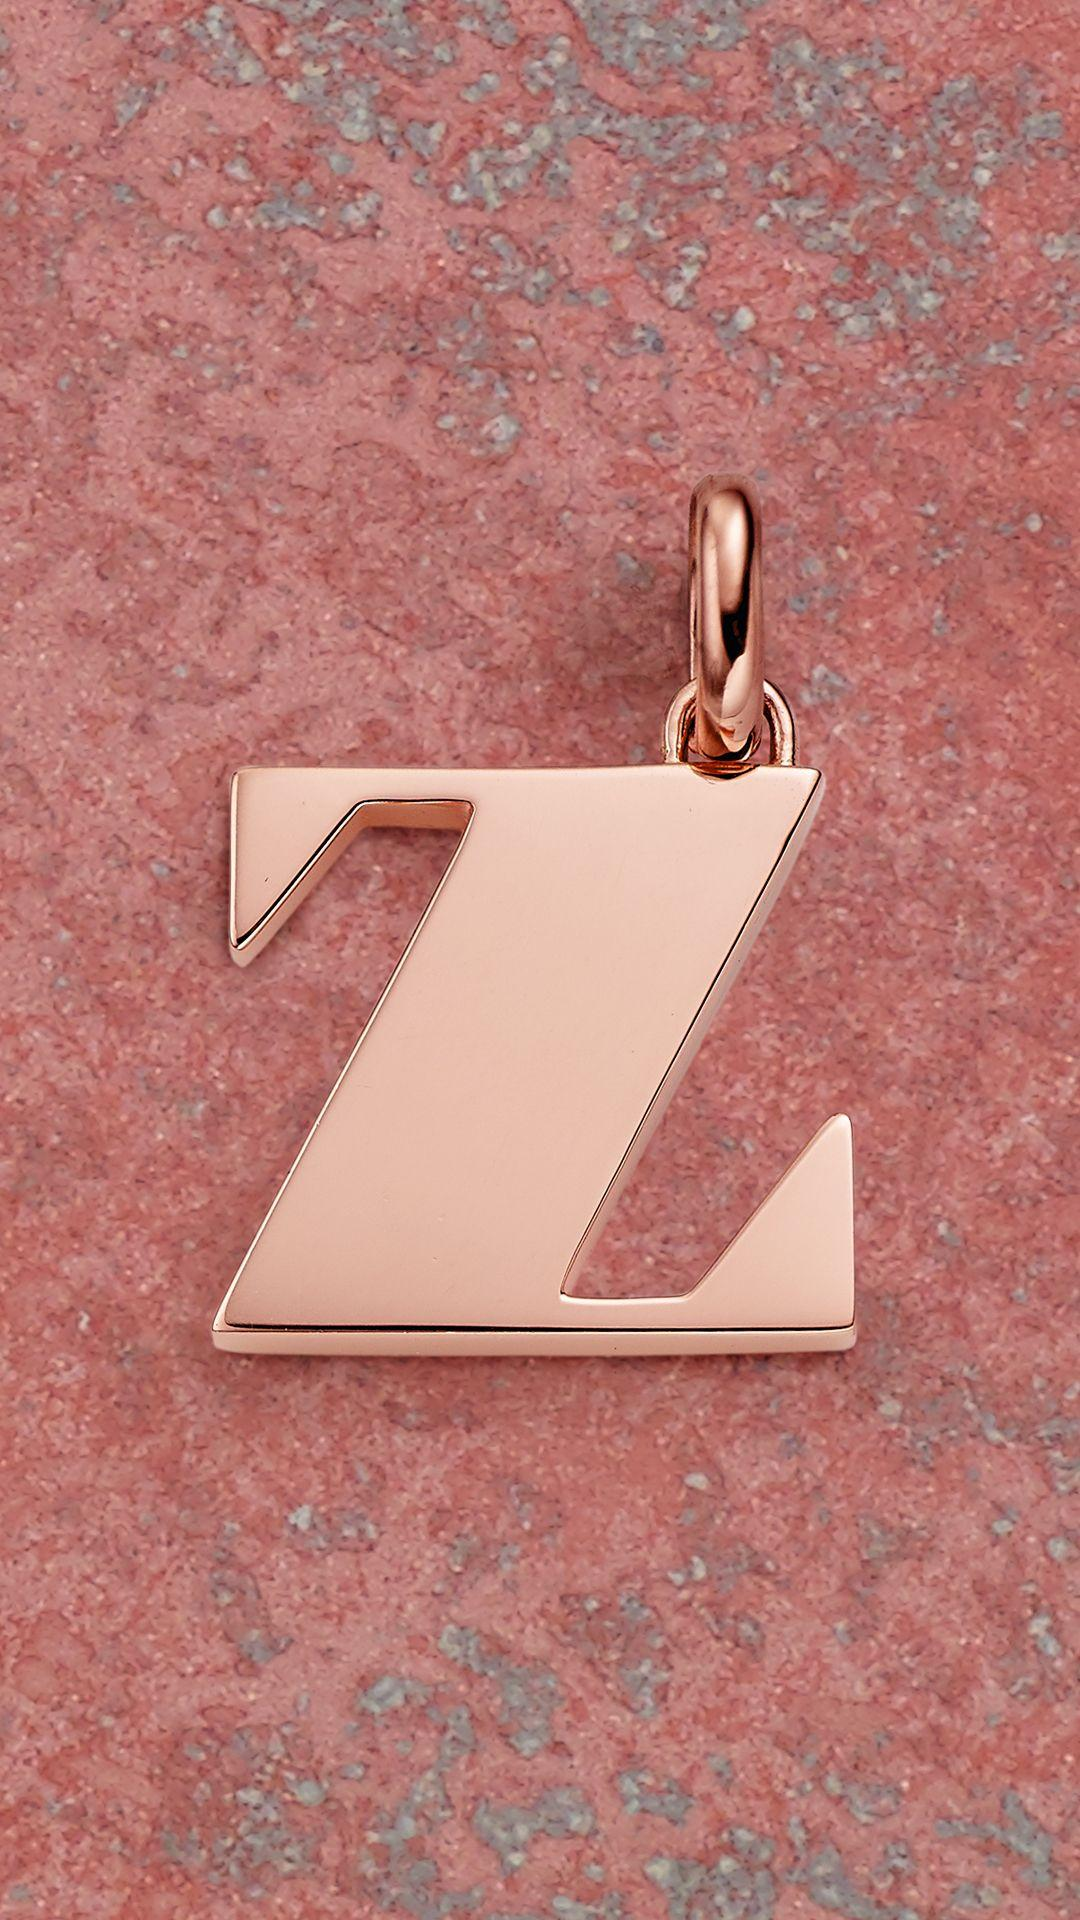 Letter Z Wallpapers Wallpaper Cave